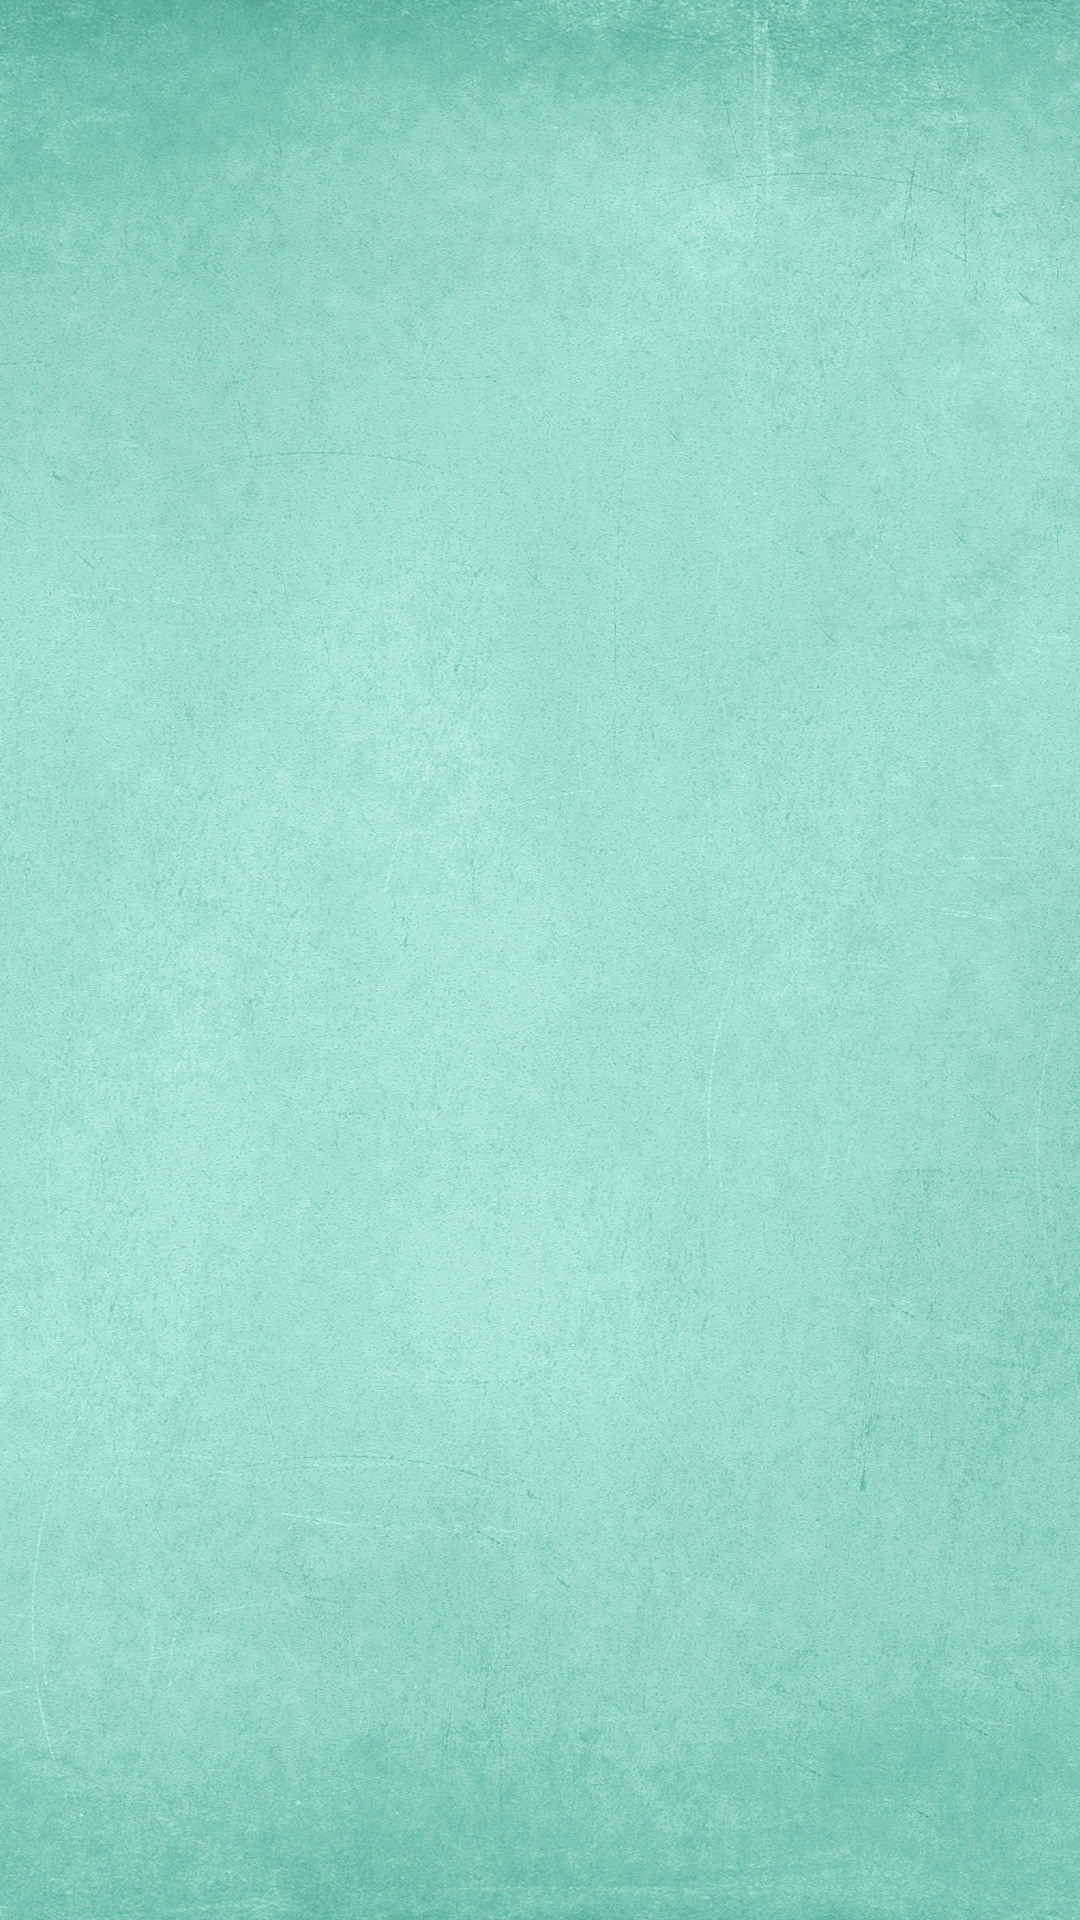 Light blue texture Wallpaper